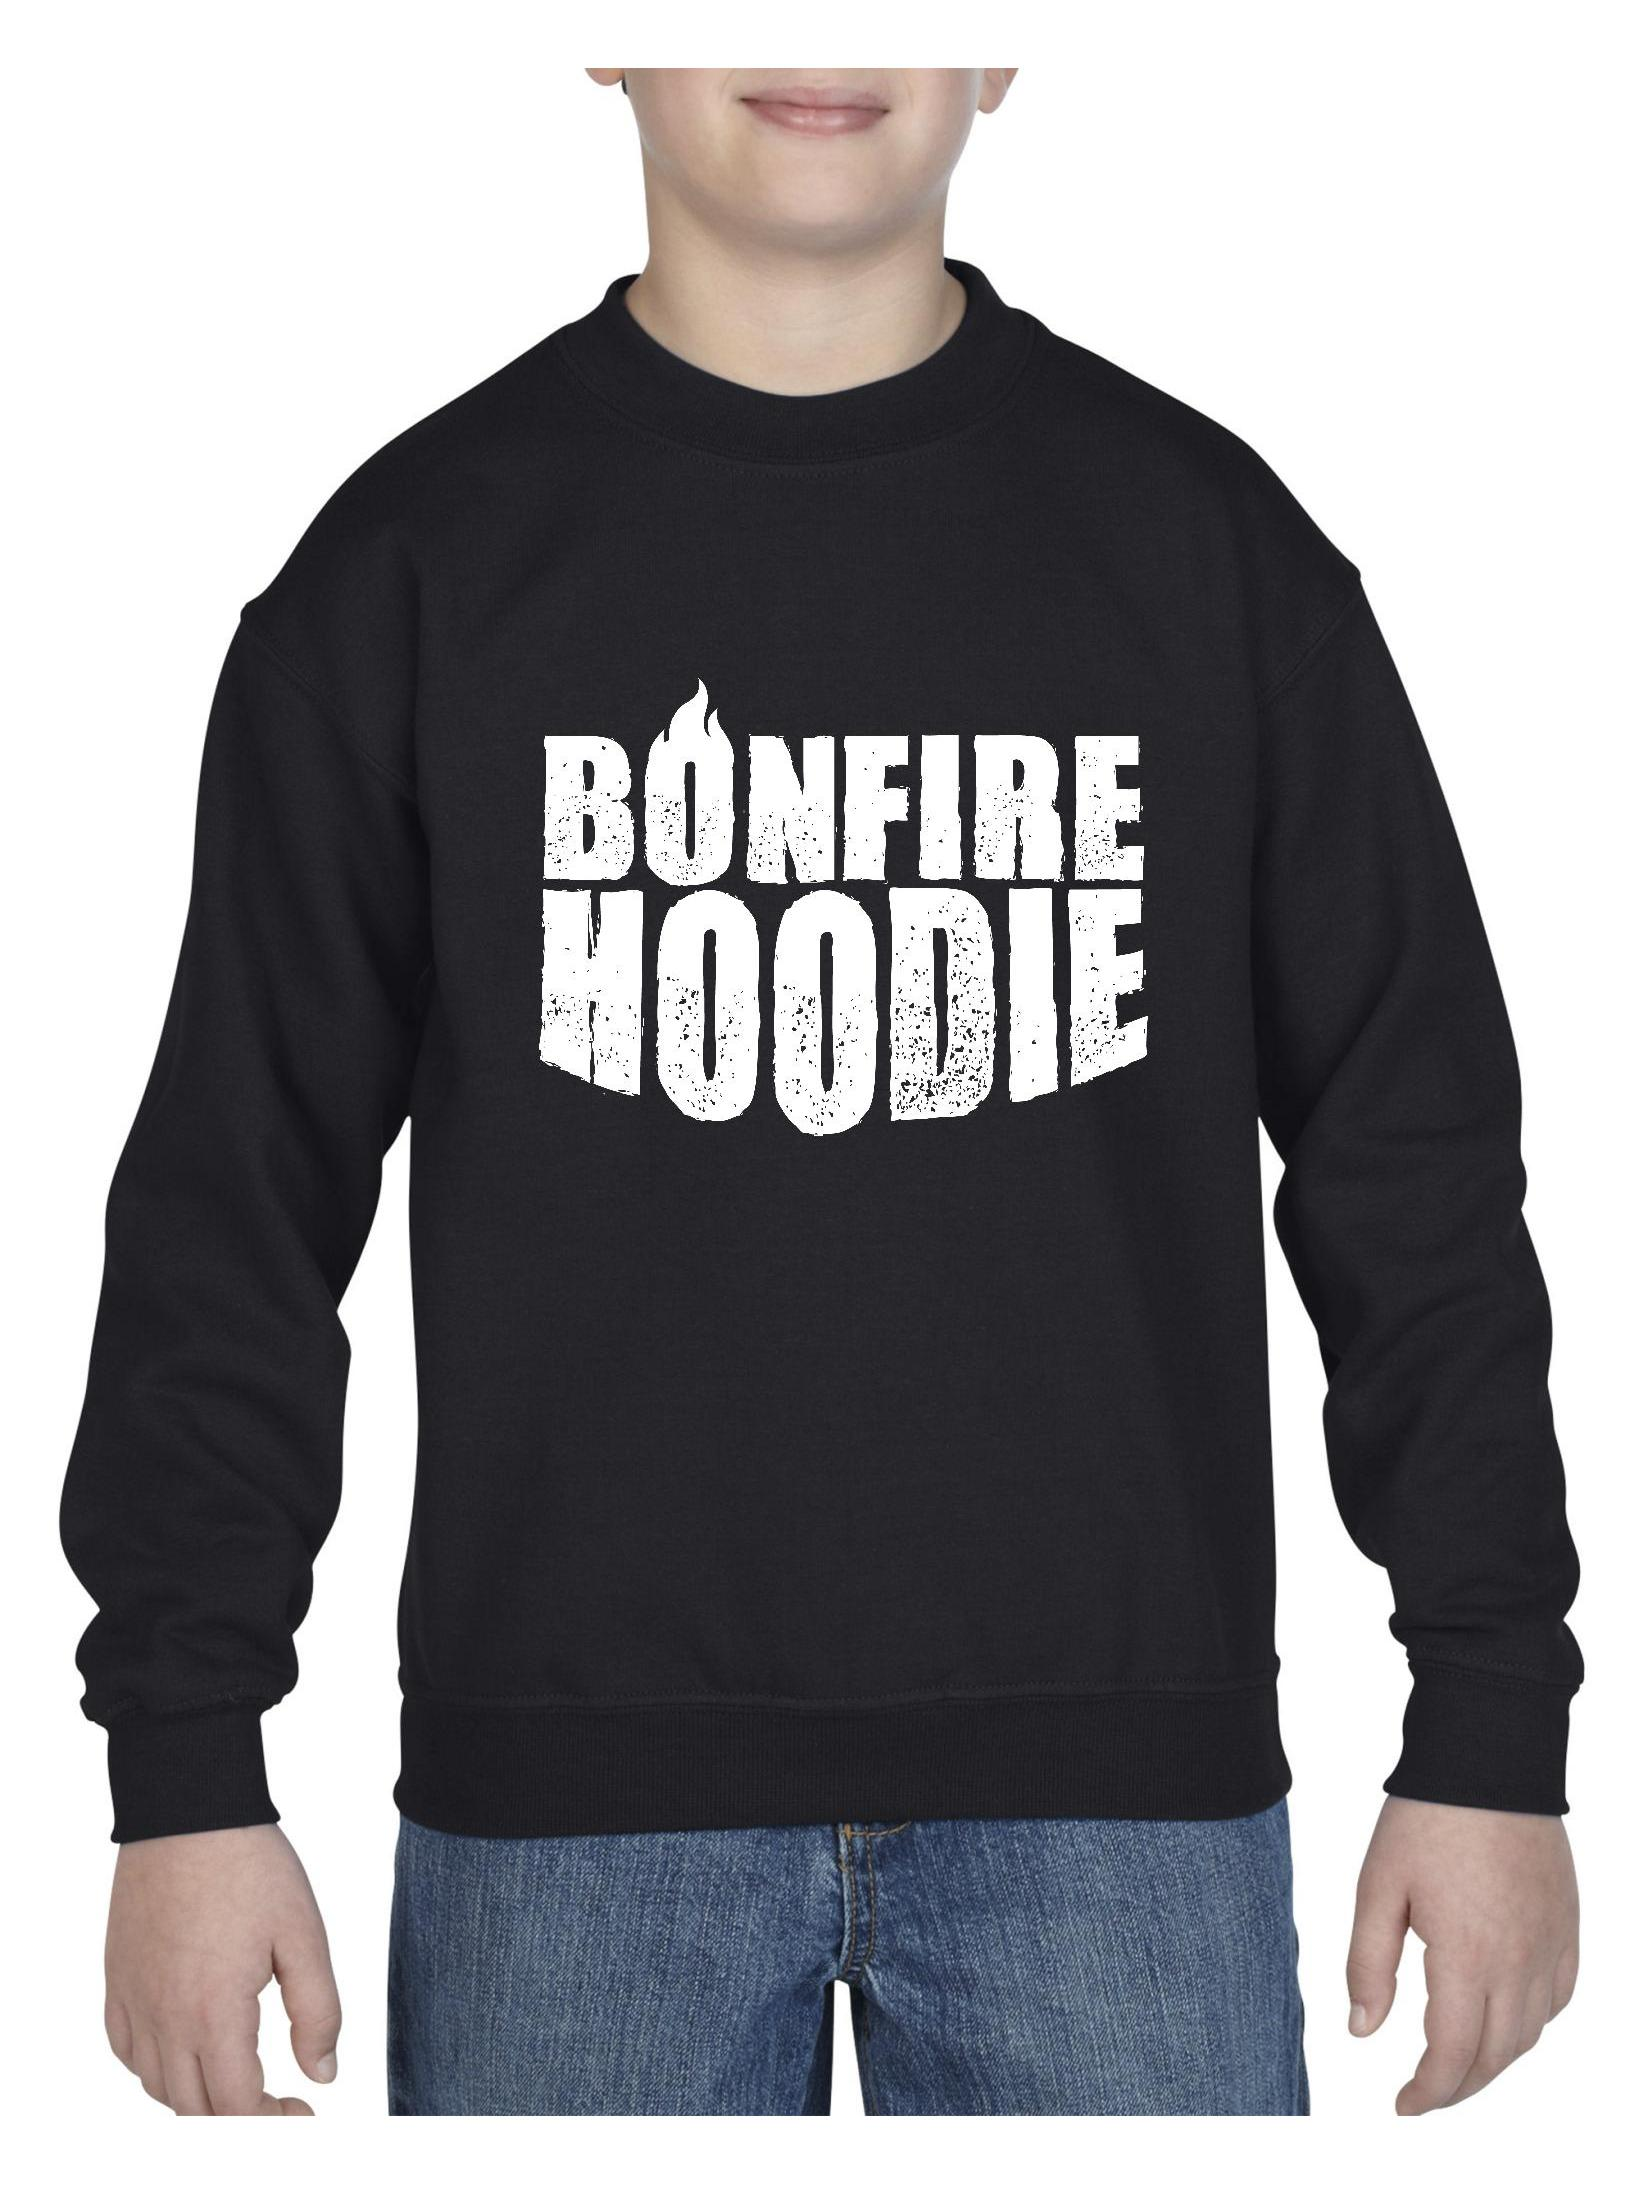 Bonfire Hoodie for Camping Youth Crewneck Sweatshirt